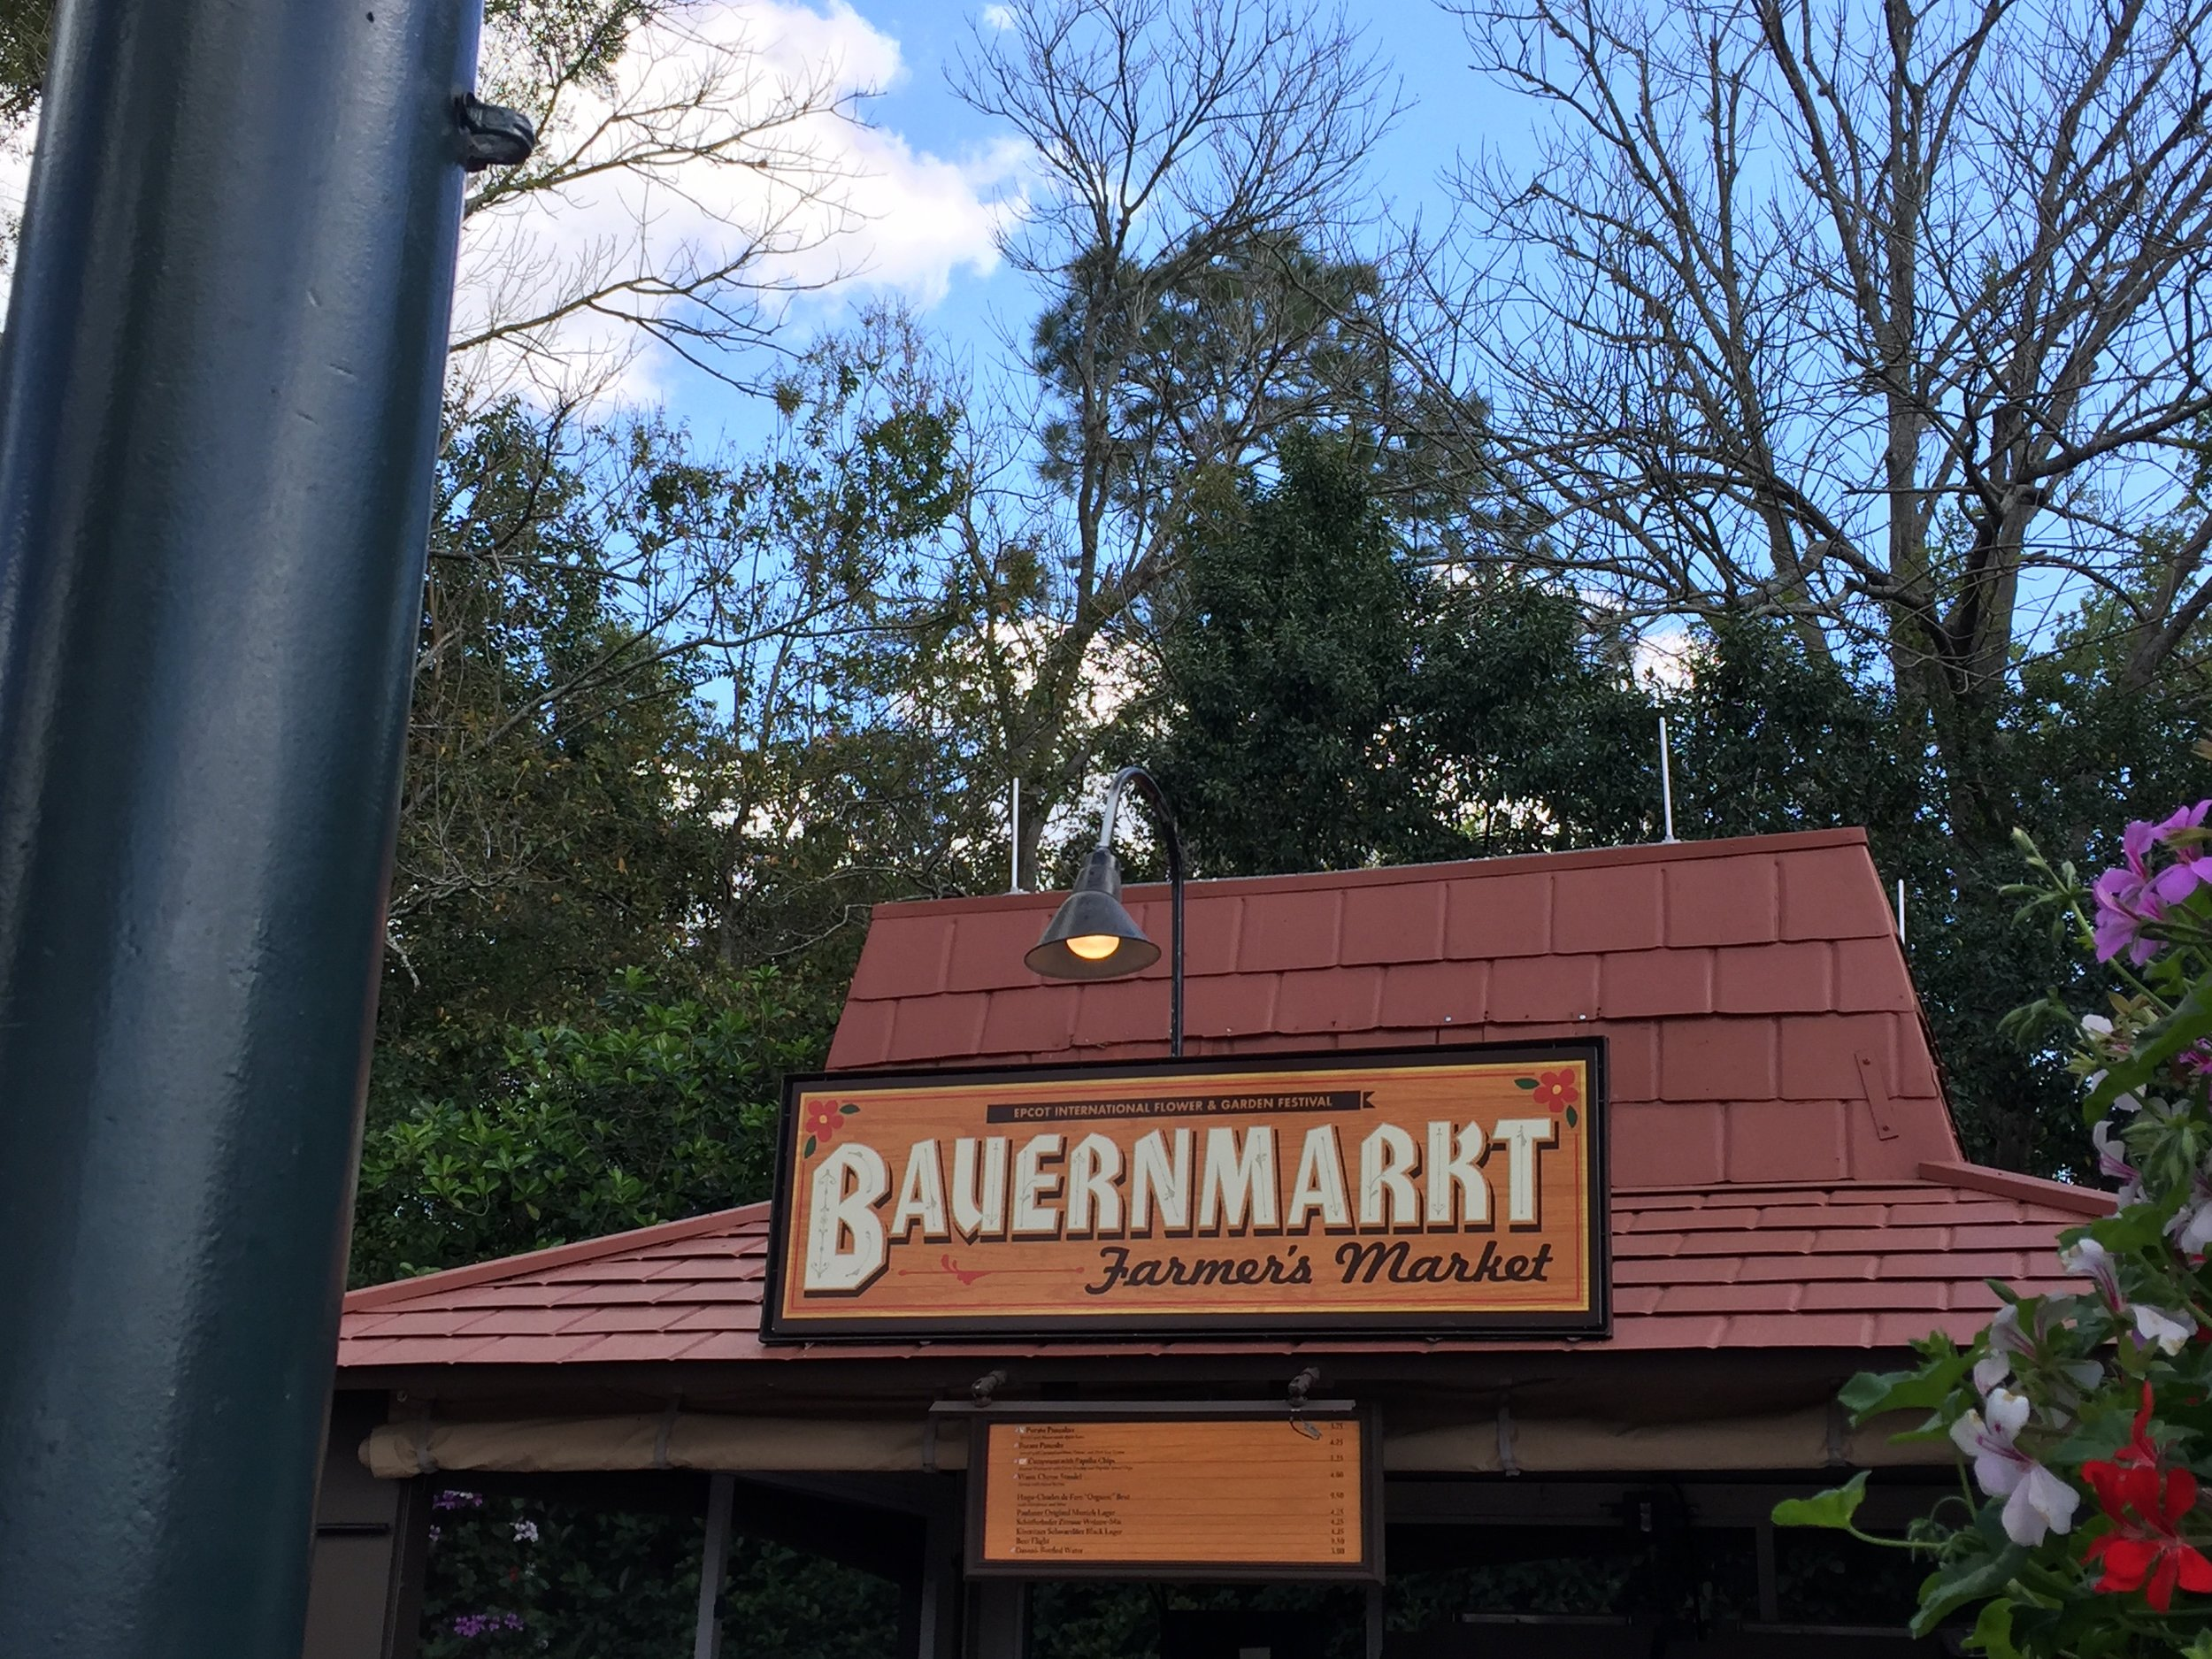 Bauernmarkt is located next to the bandstand in the Germany Pavilion.